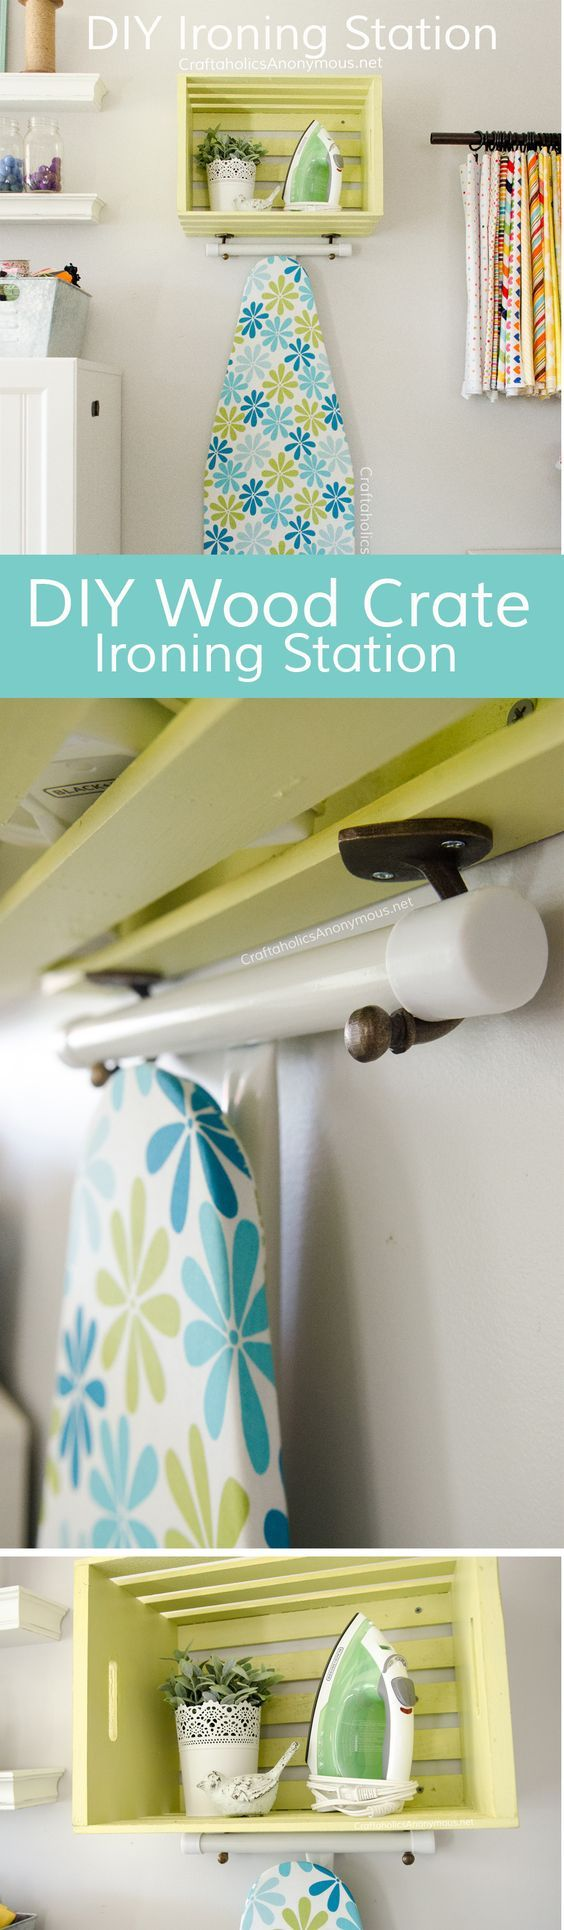 Finally a holder for the ironing board!! Love this project to help with organization! Great tutorial, and great decor.